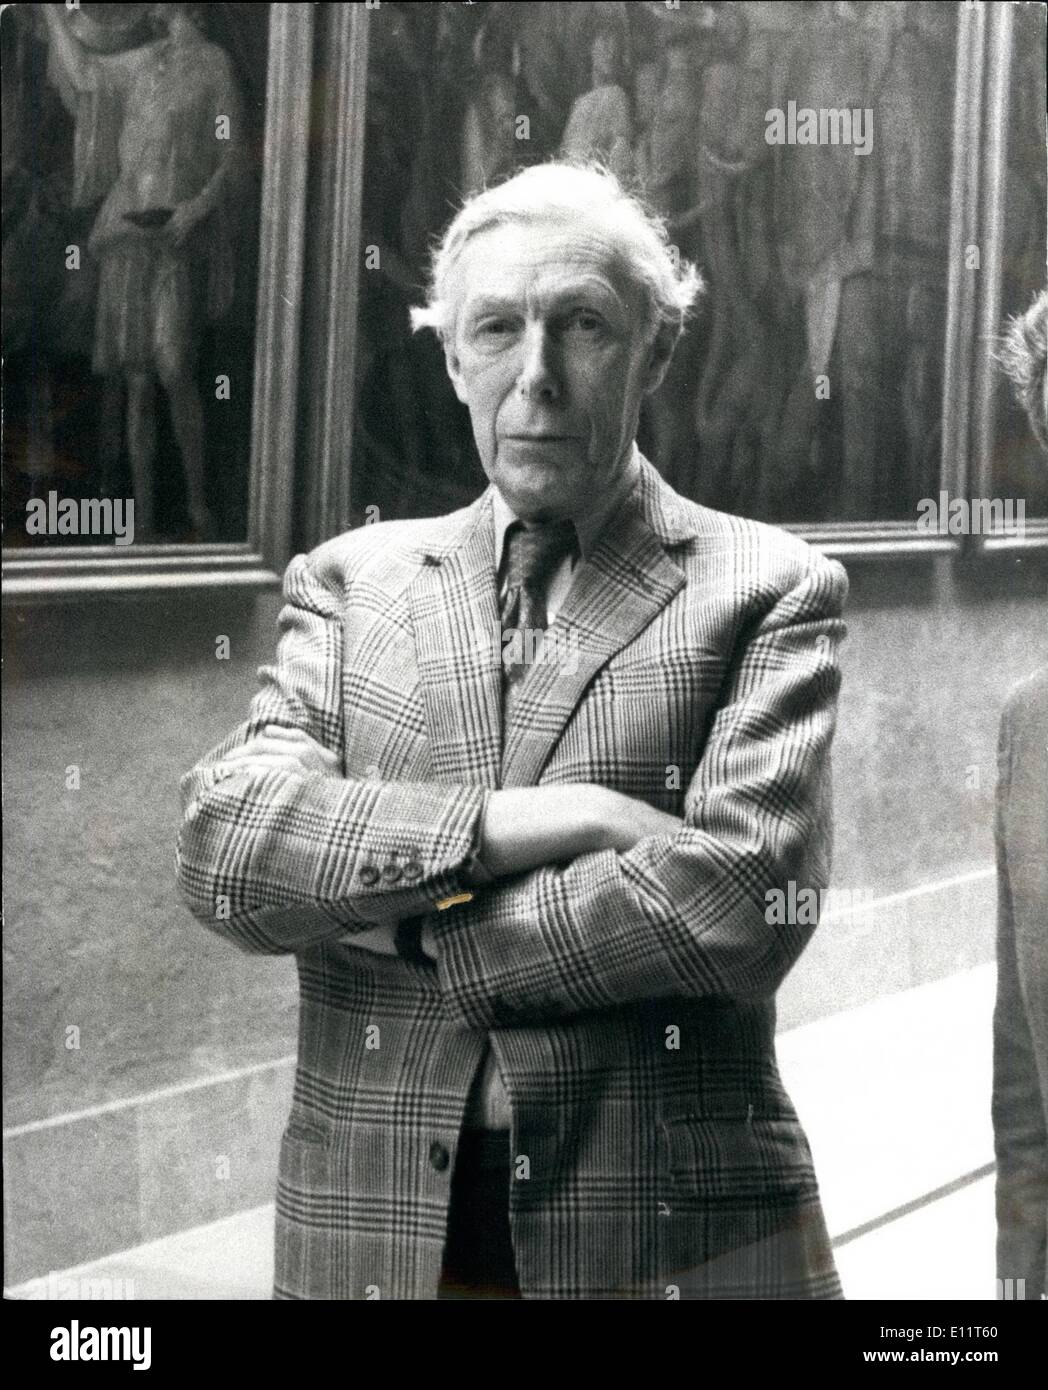 Nov. 11, 1979 - Sir Anthony blunt mentioned in connection with the Burges and MaClean spy case.: Sir Anthony Blunt, who used to - Stock Image